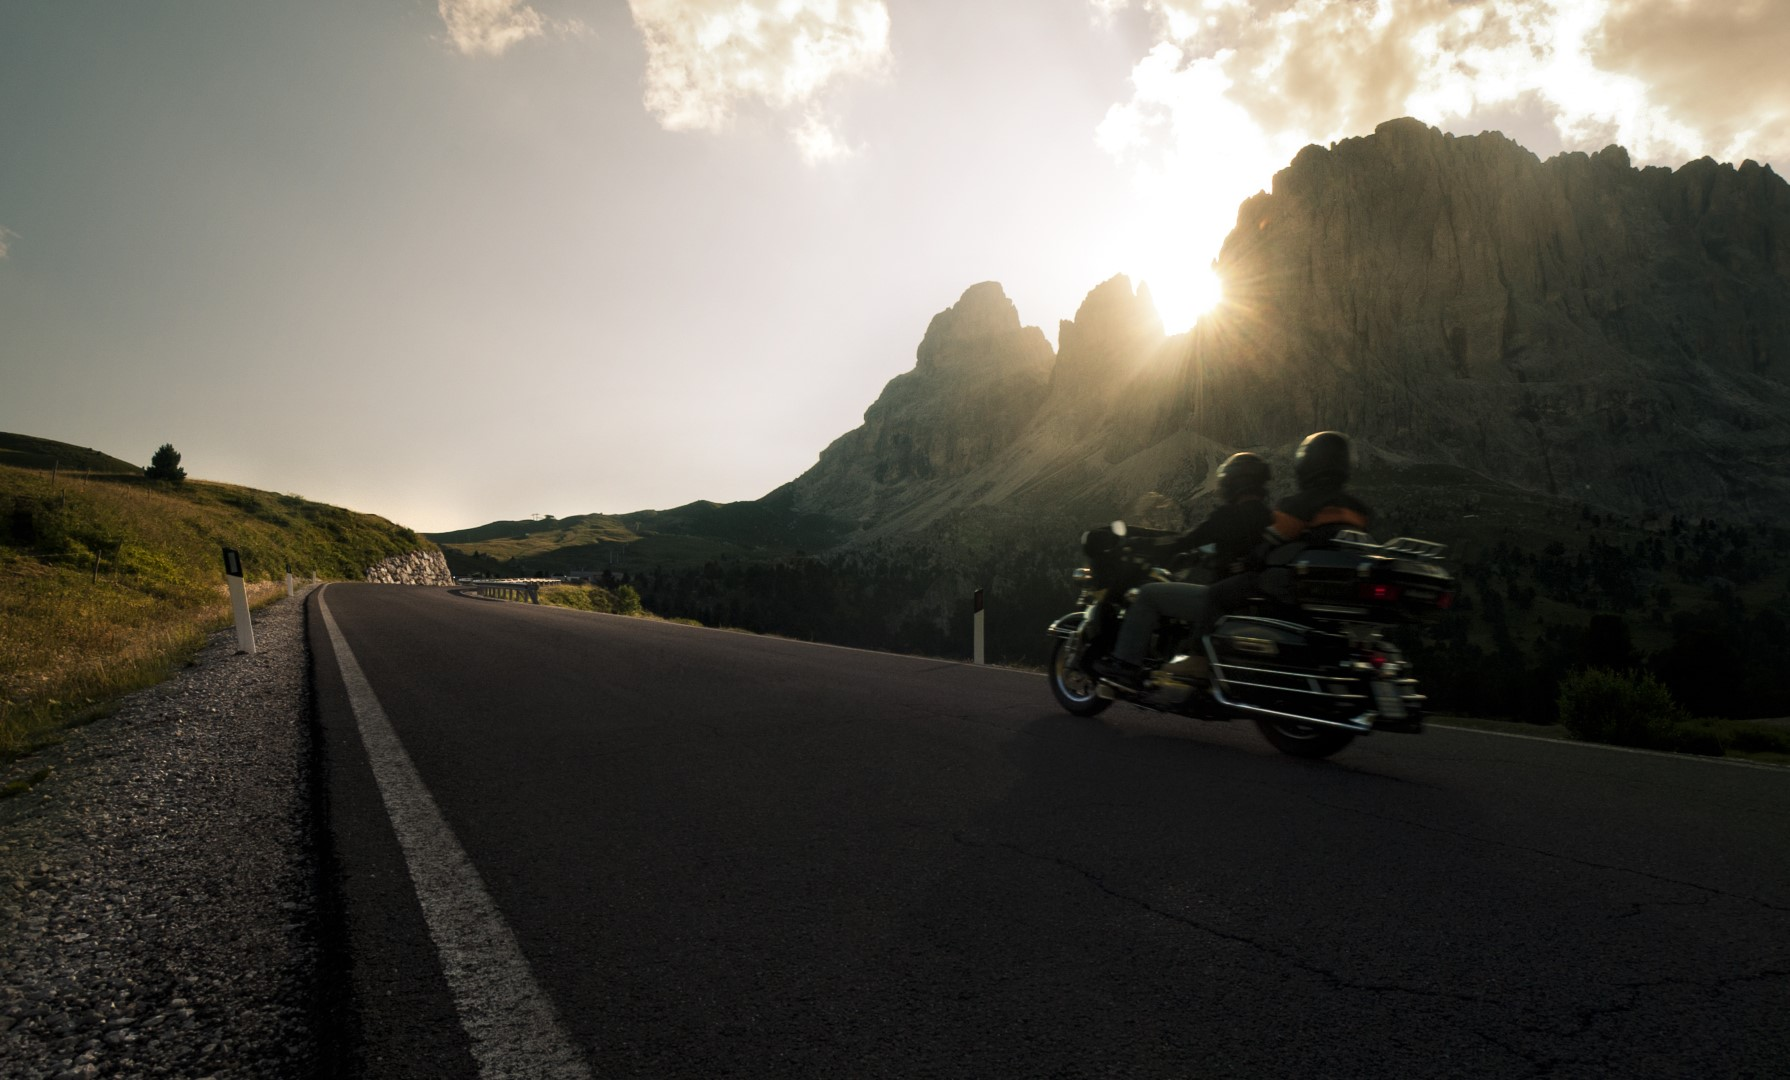 To the Sella Pass with a motorbike